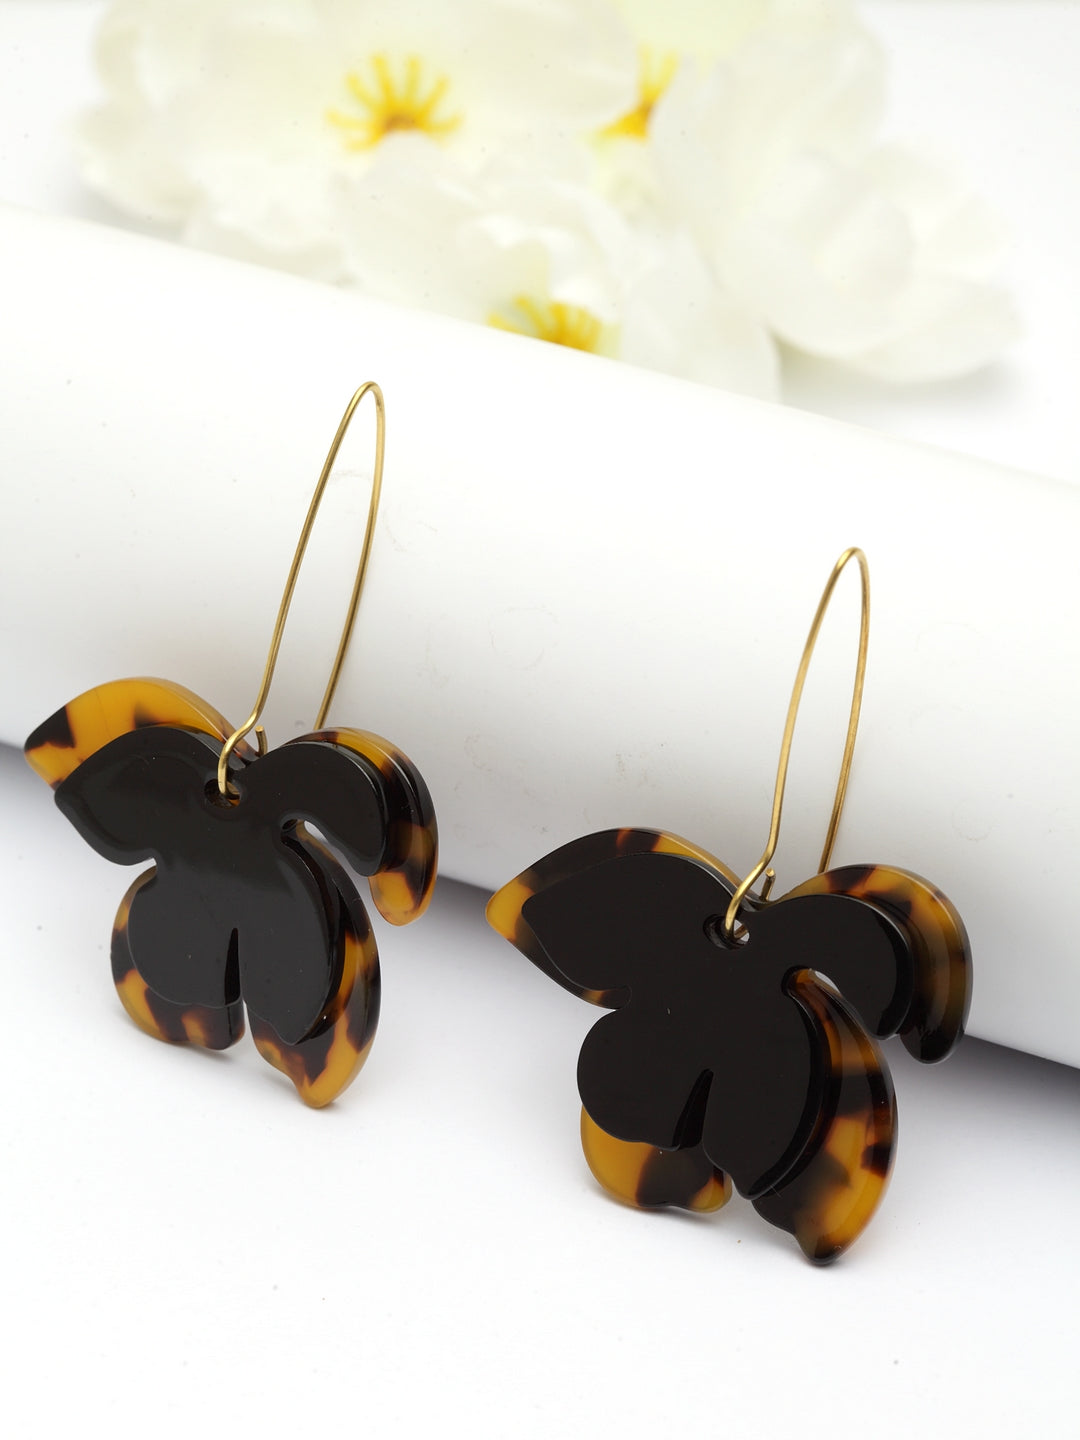 Avant-Garde Paris Statement Vintage Acrylic Resin Leaf Earrings